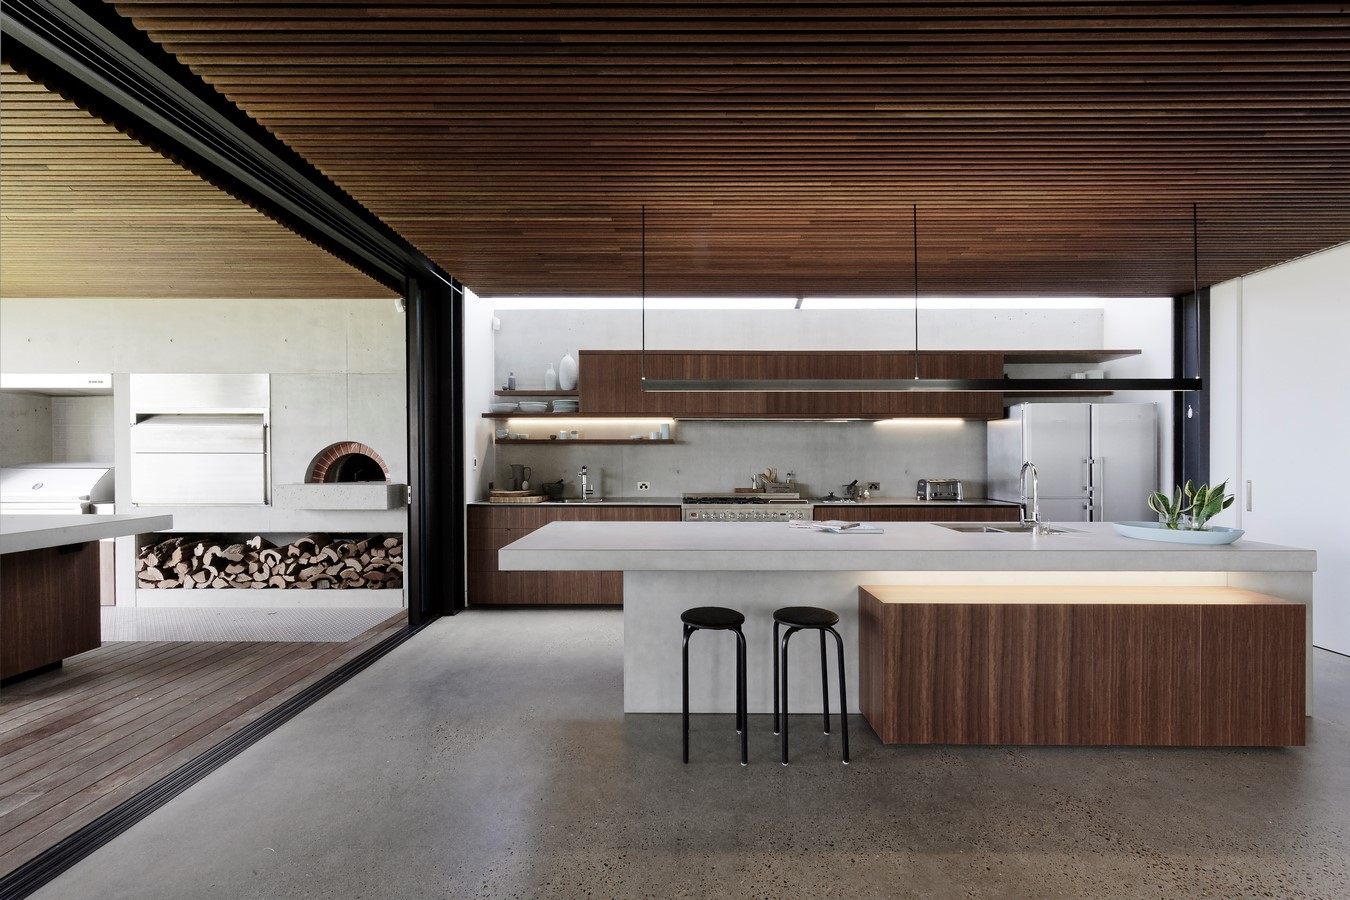 BEACH HOUSE by Architecture Saville Isaacs - Sheet2